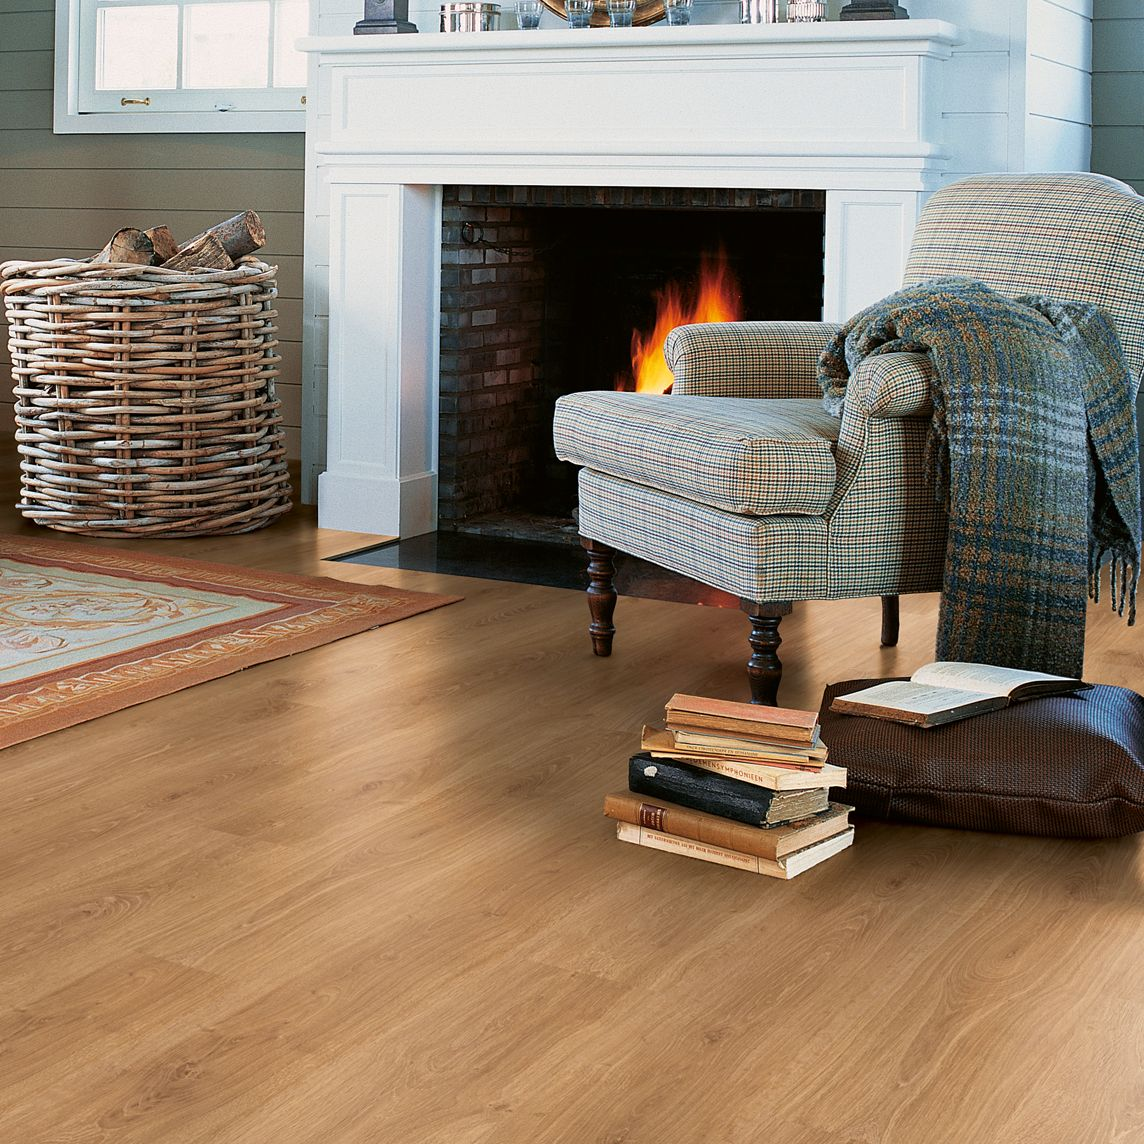 Calando Authentic Oak Effect Laminate Flooring 1 59 M² Pack Departments Diy At B Q